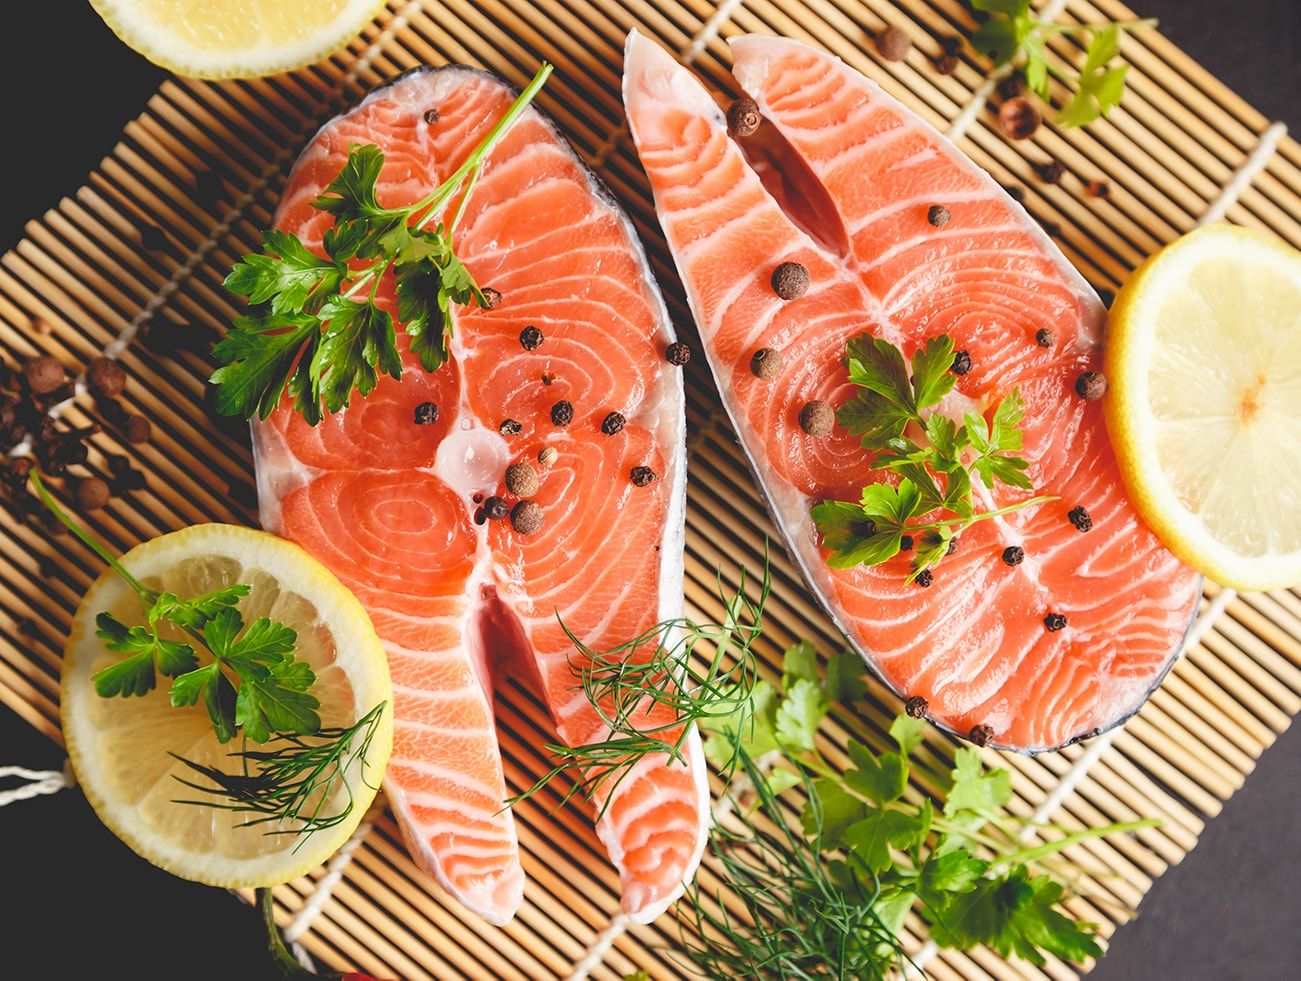 salmon-steaks-with-lemon-and-spices-close-up-view-1300×979-min